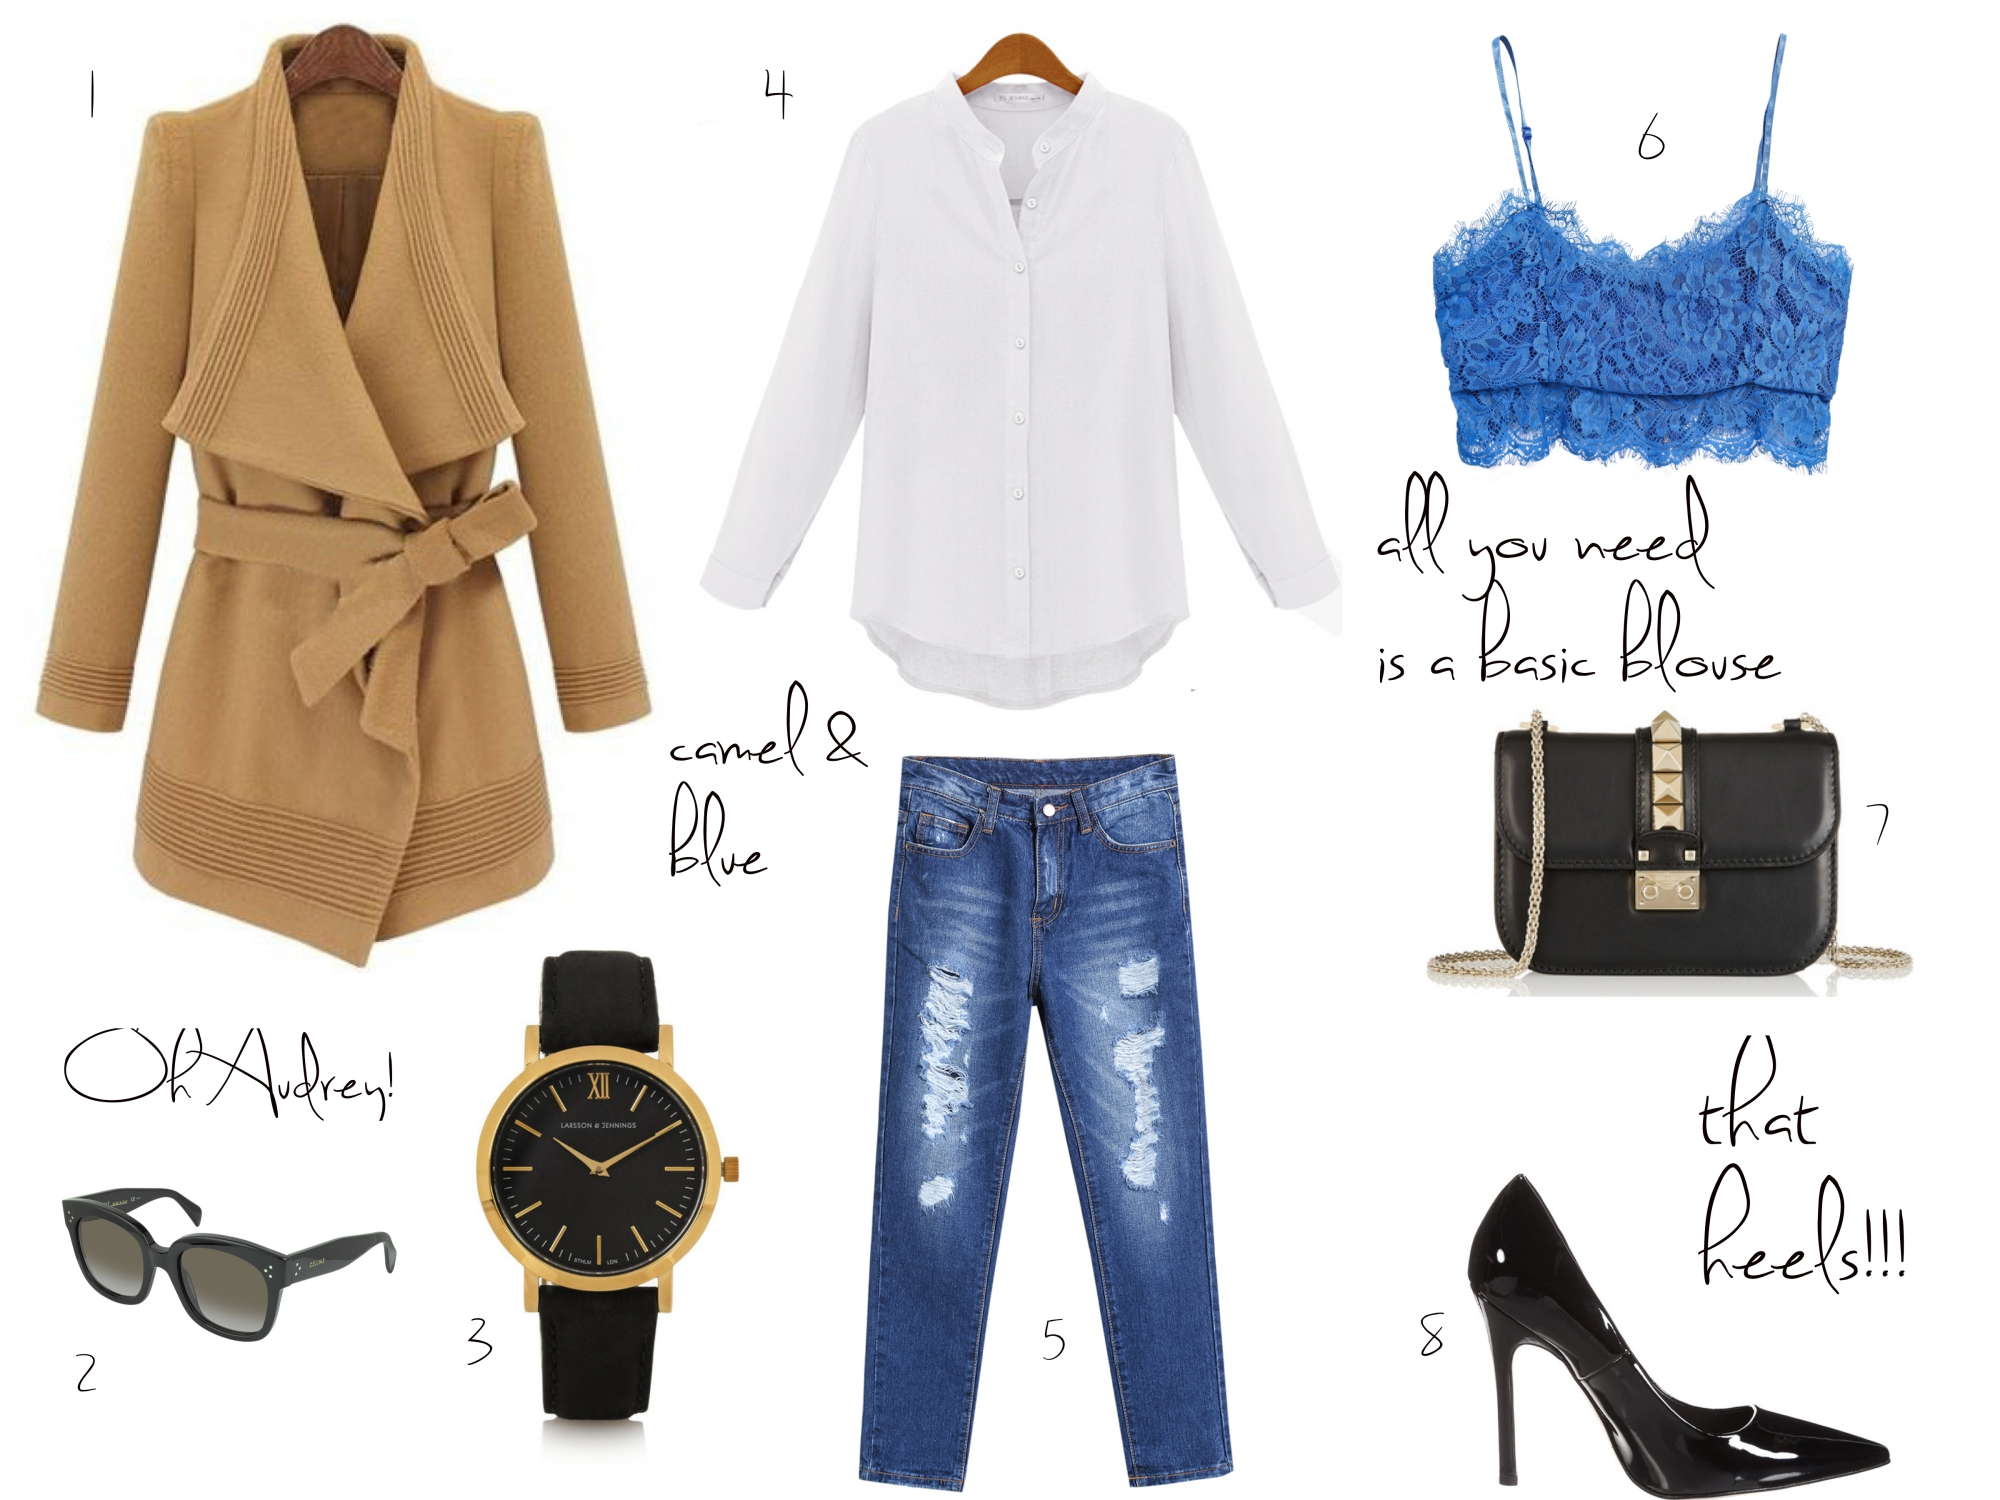 collage-winter-spring-items-fashionhippieloves